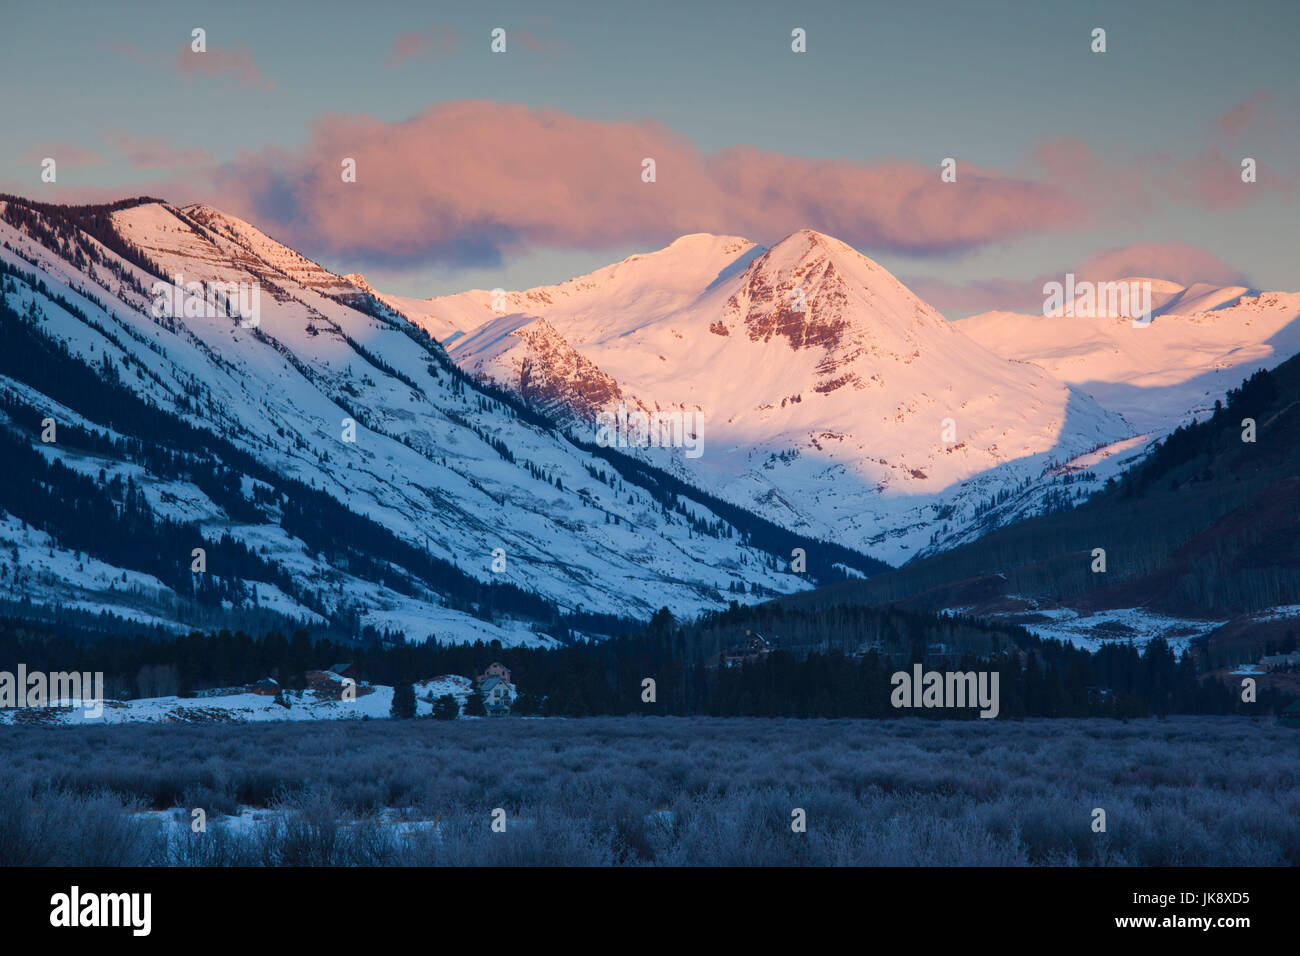 USA, Colorado, Crested Butte, Ruby Range Mountains, dawn - Stock Image